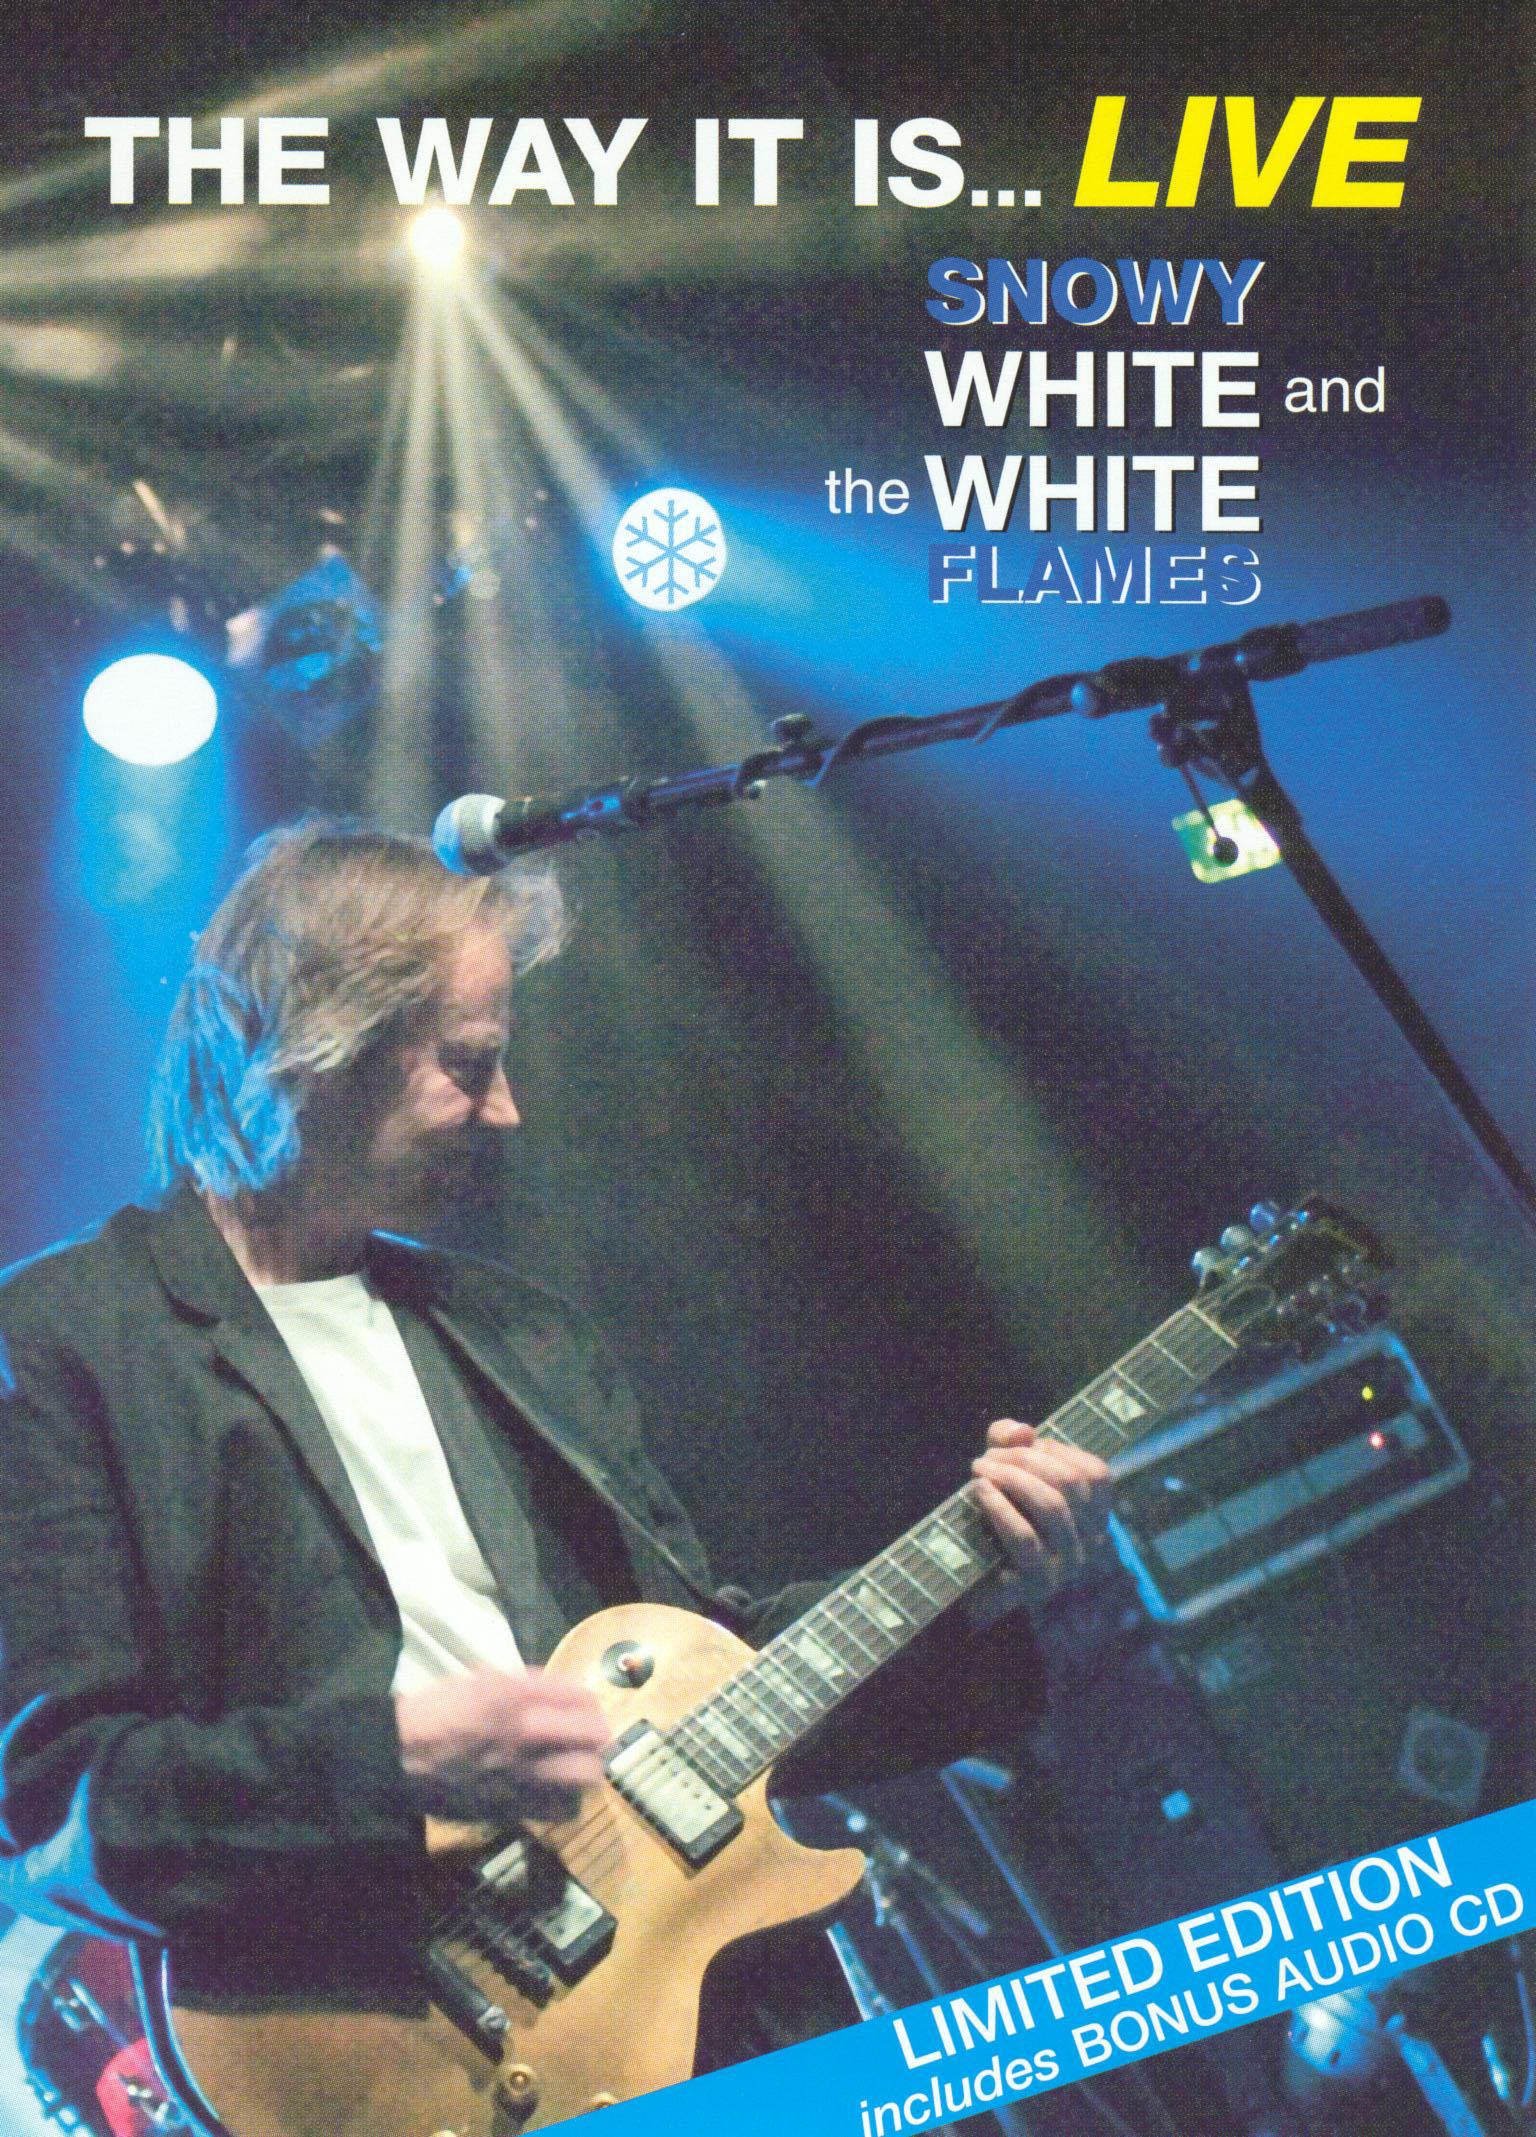 Snowy White and the White Flames: The Way It Is - Live